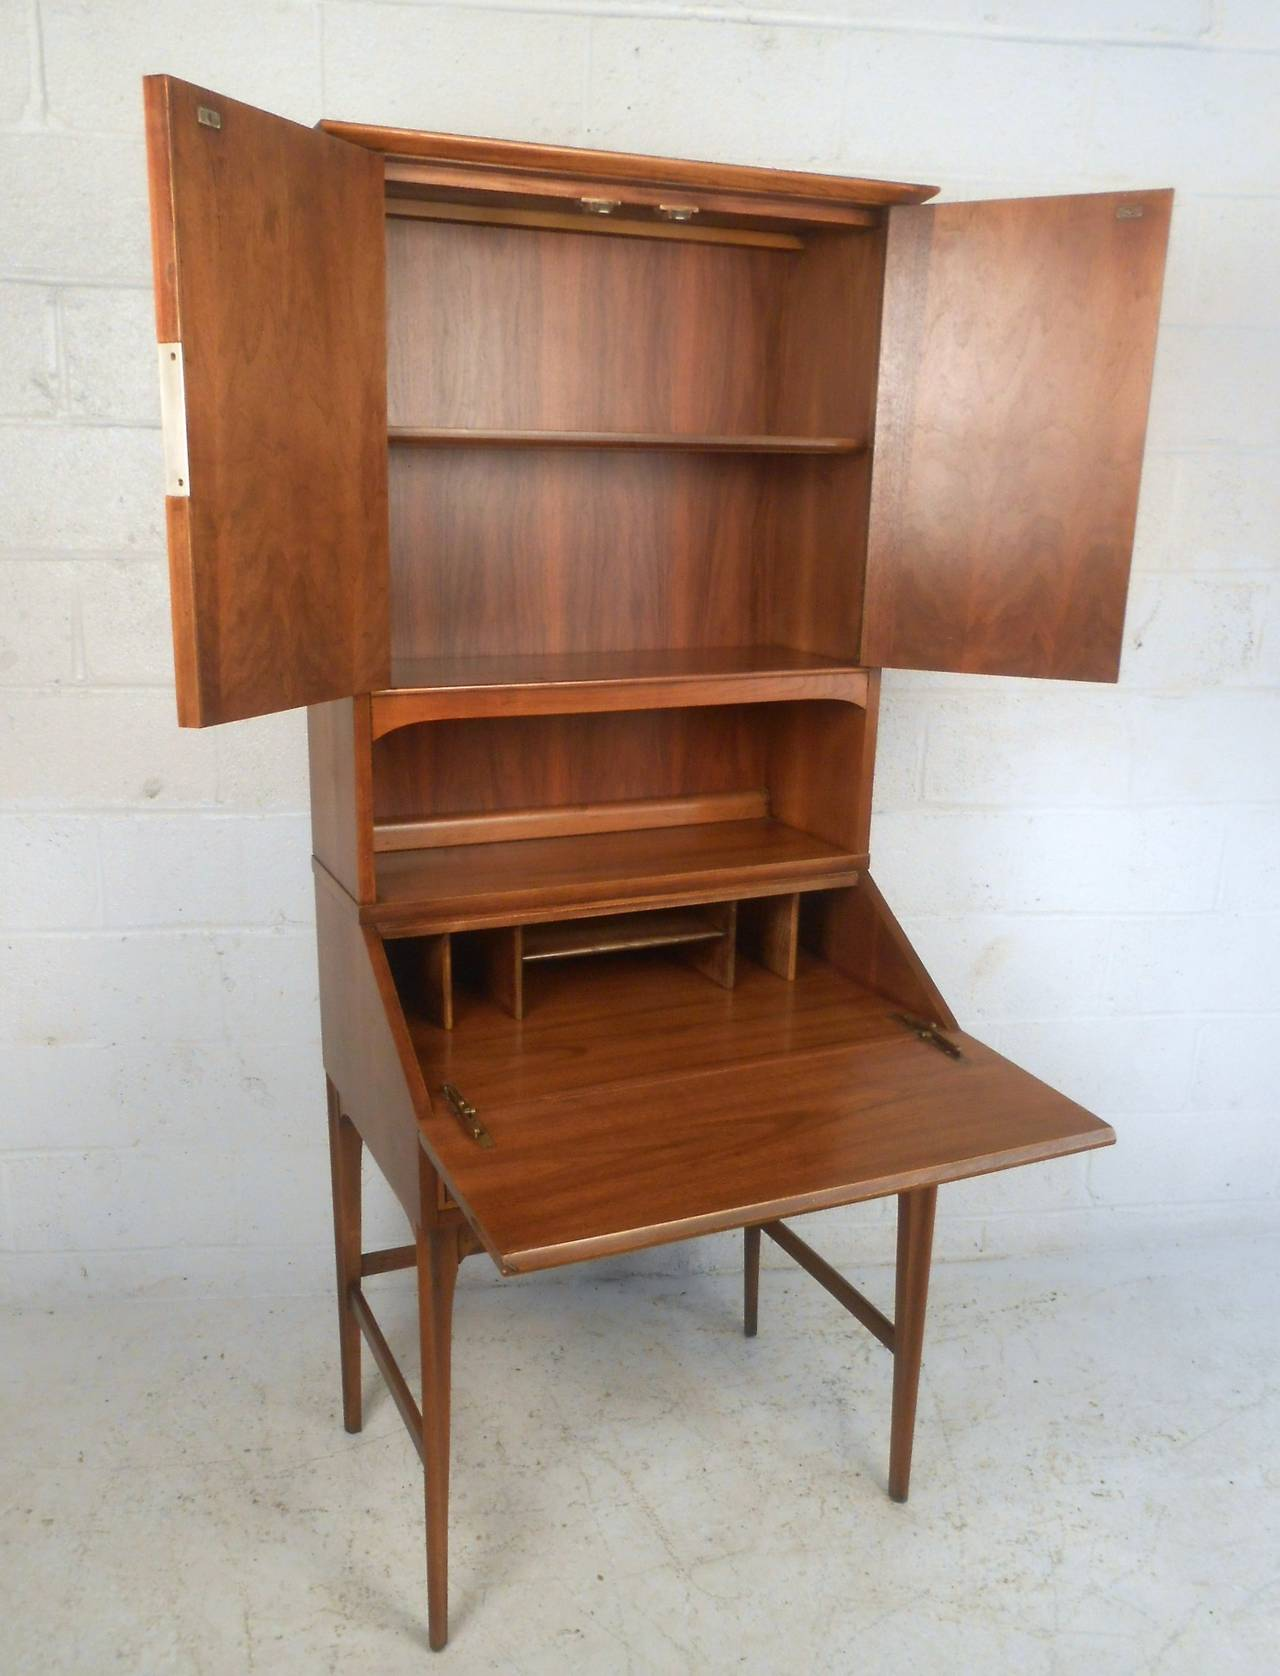 Mid century modern drexel style secretary hutch for sale at 1stdibs - Modern secretary desk with hutch ...